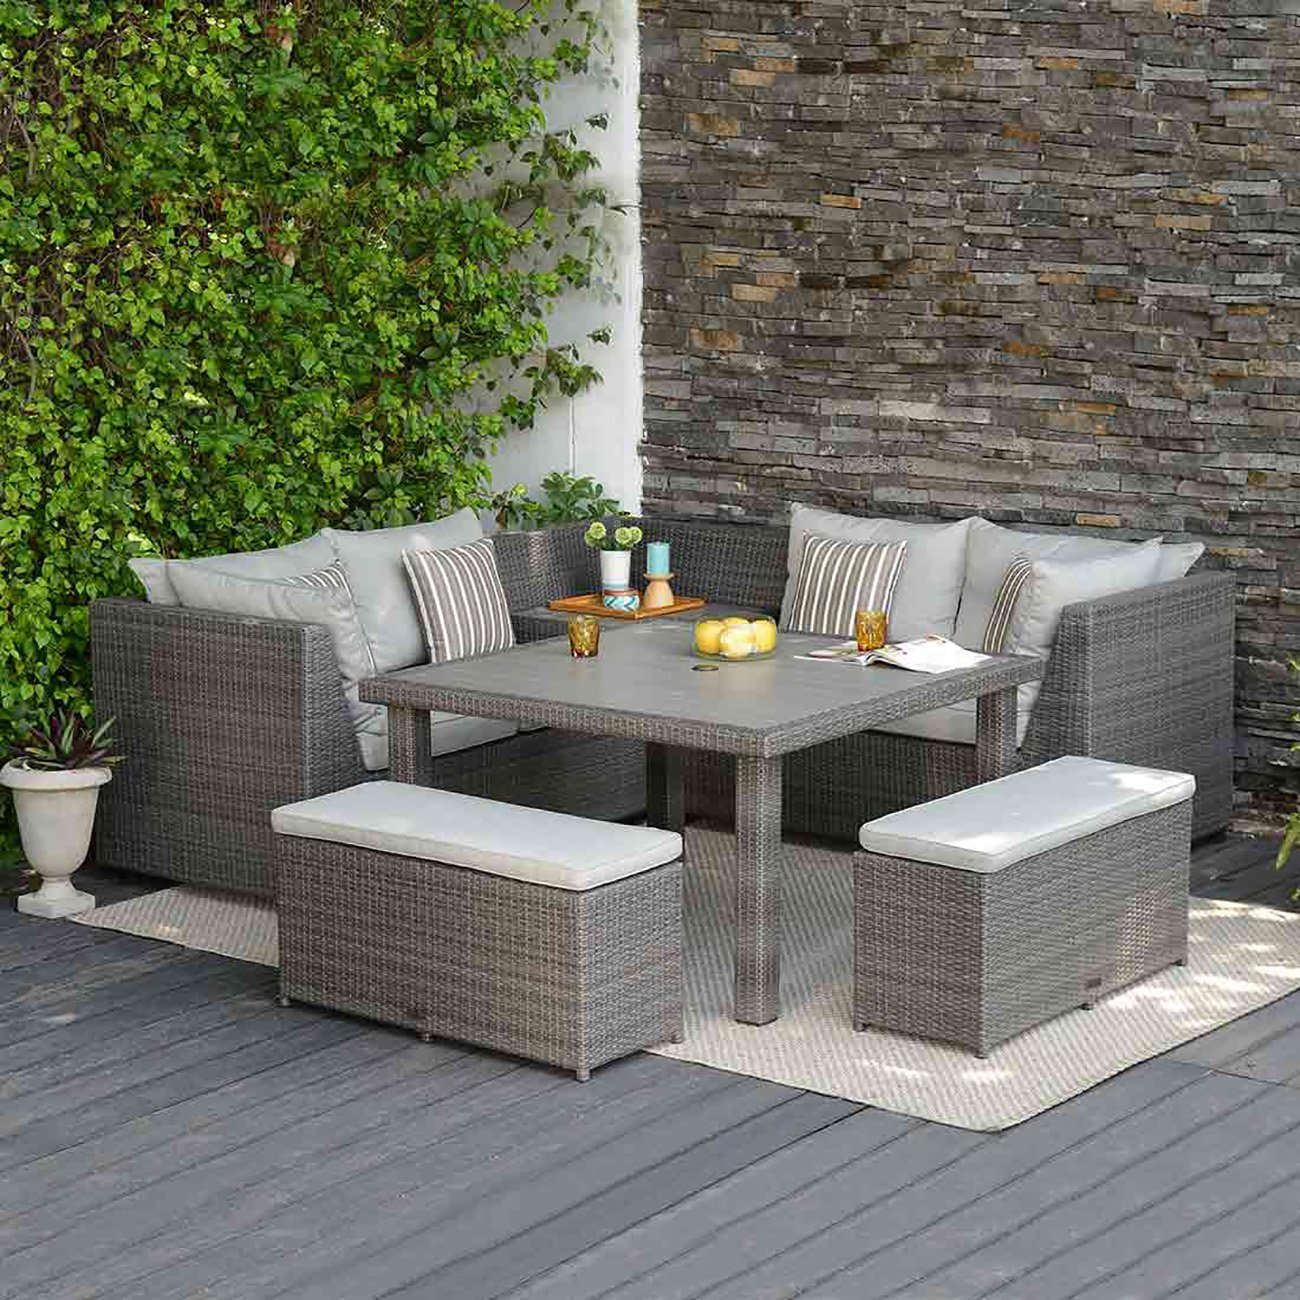 Dining lounge outliv andaman lounge ecke polyrattan for Lounge ecke garten